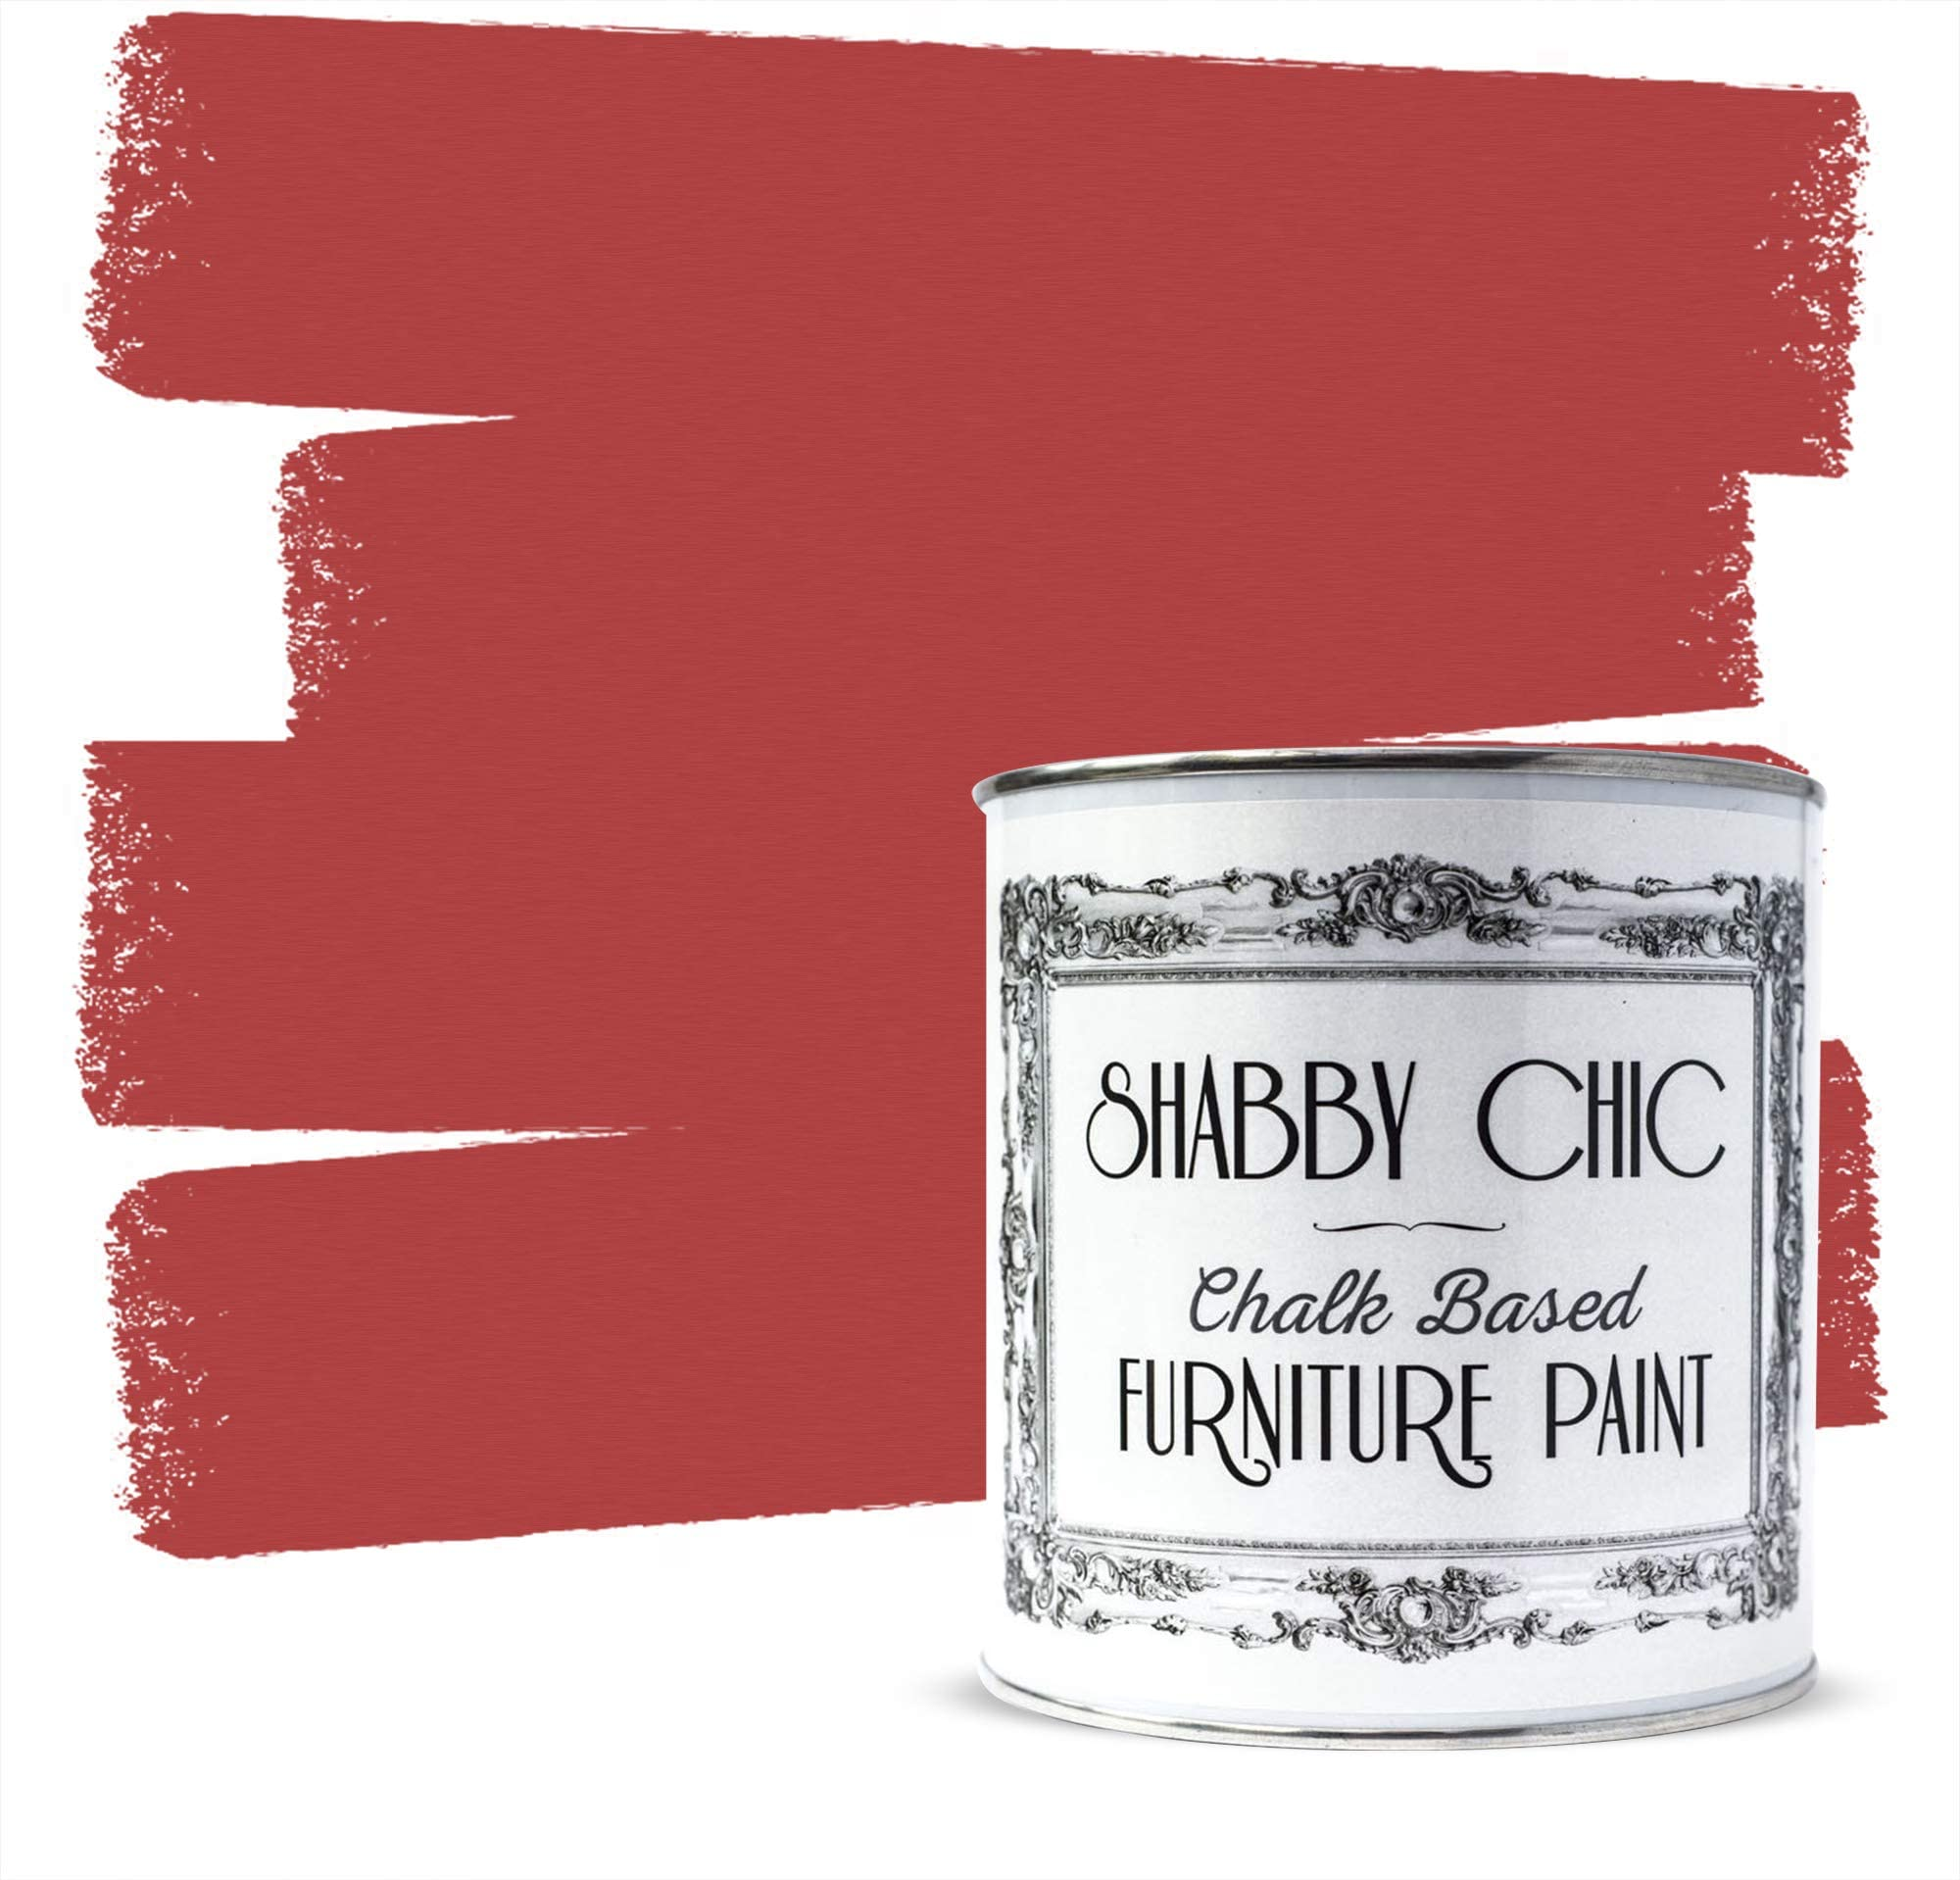 Shabby Chic Furniture Chalk Paint: Chalk Based Furniture and Craft Paint for Home Decor, DIY Projects, Wood Furniture - Chalked Interior Paints with Rustic Matte Finish - Liter - Nautical Red